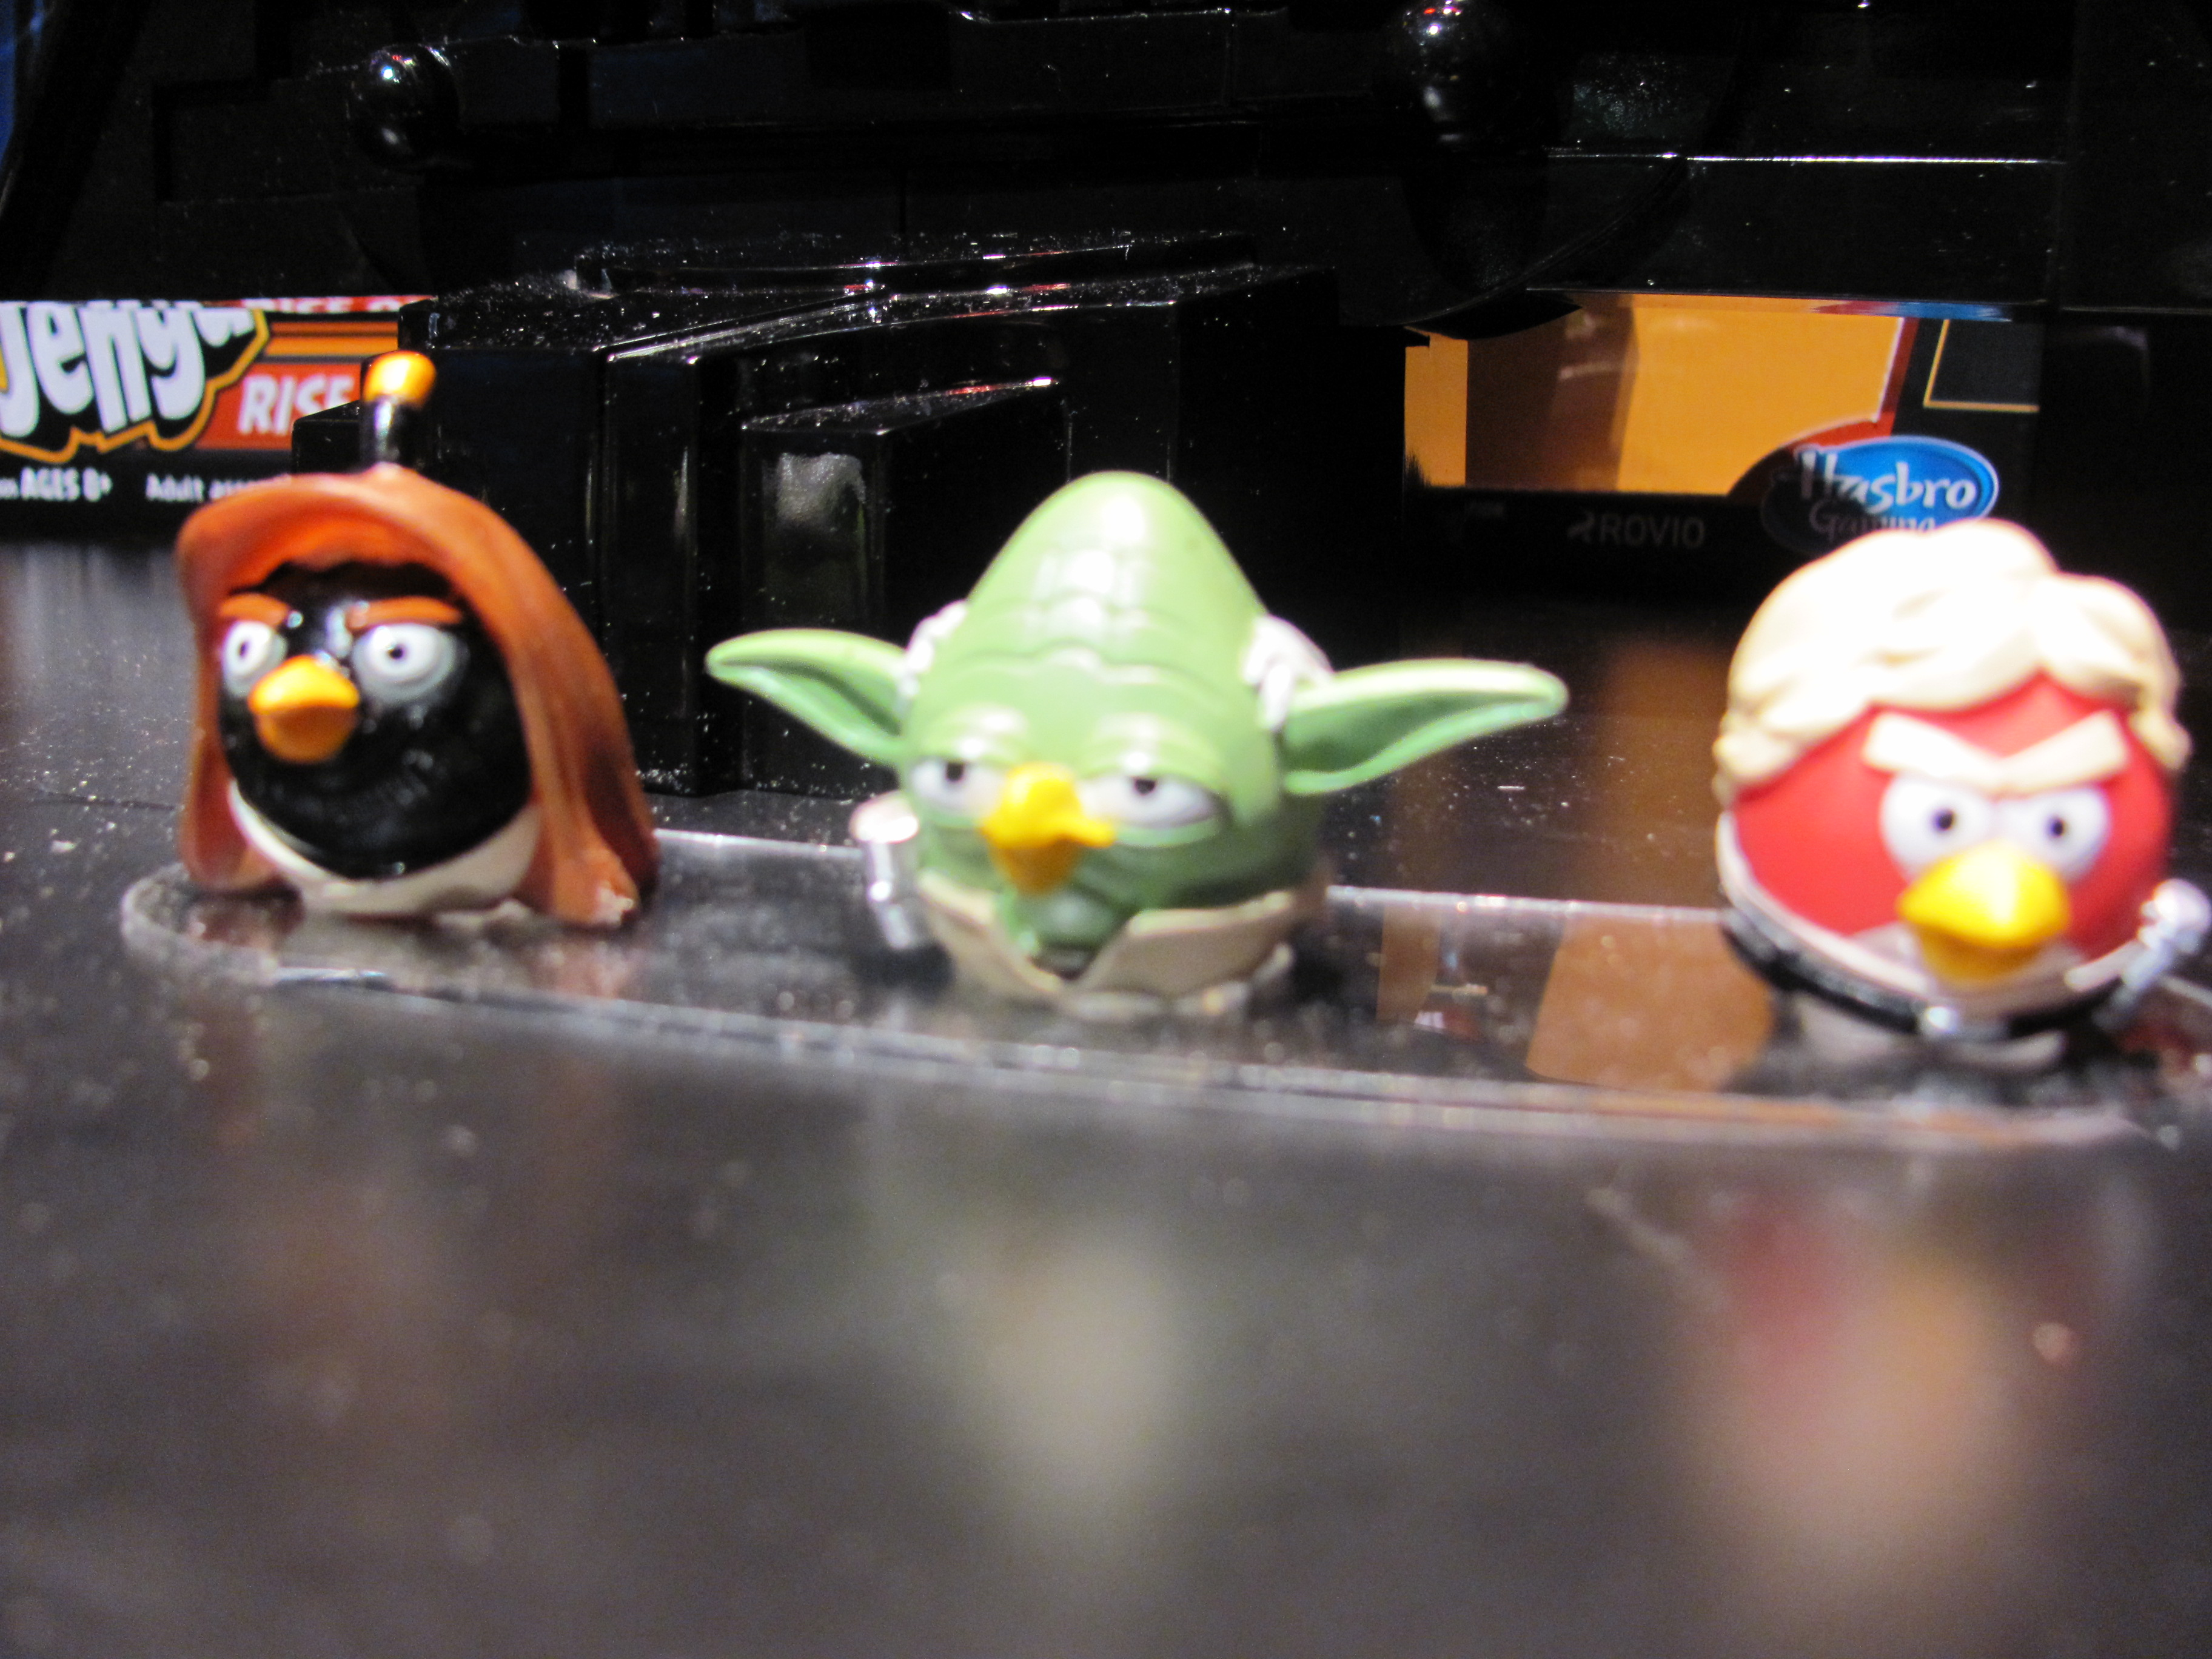 Angry Birds Star Wars Toys : Angry birds star wars toys collections for sale in raheny dublin